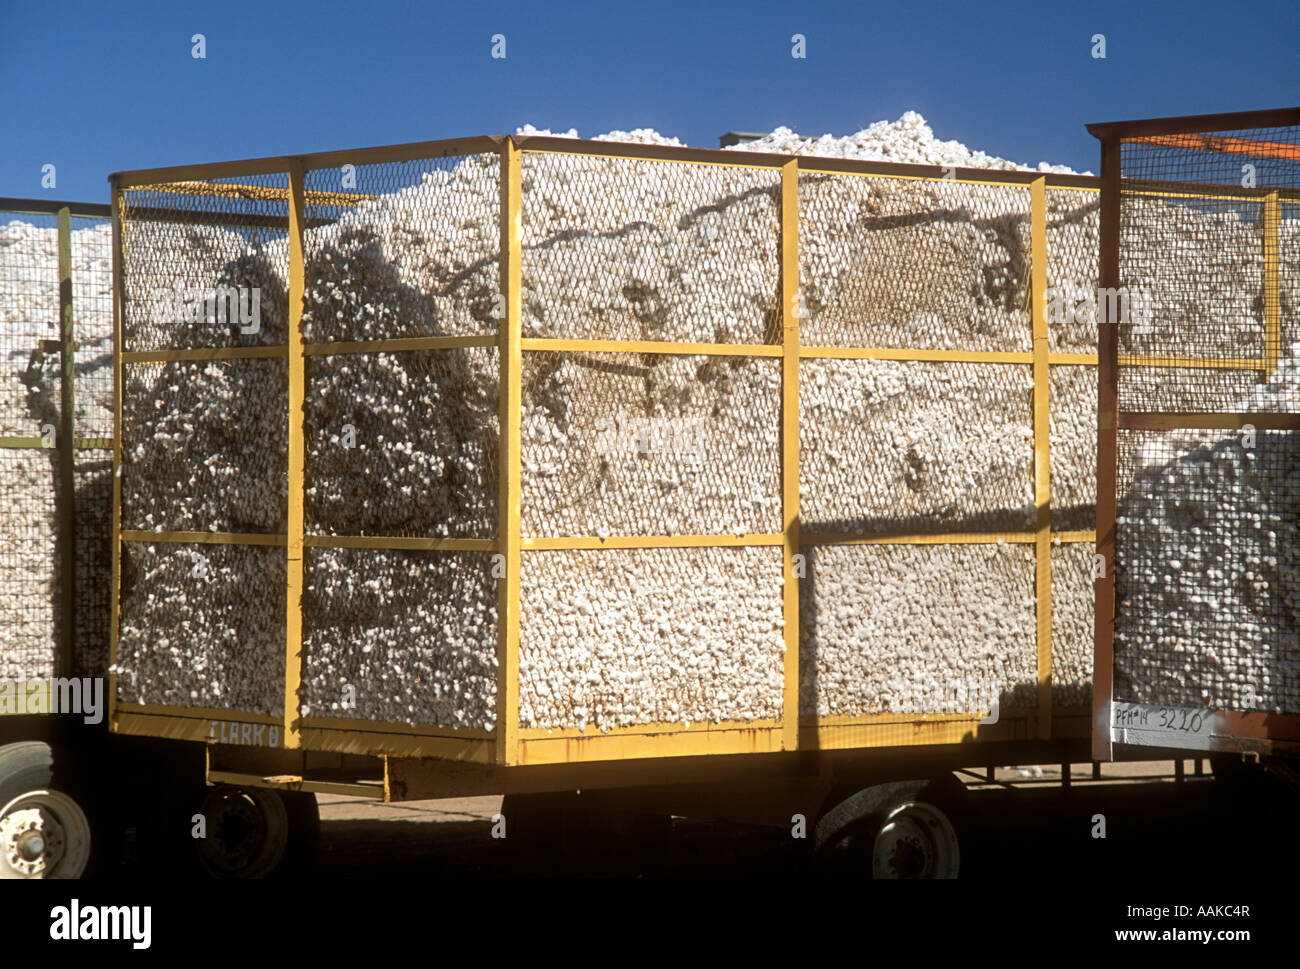 Truckloads of cotton ready for market Marana Arizona - Stock Image